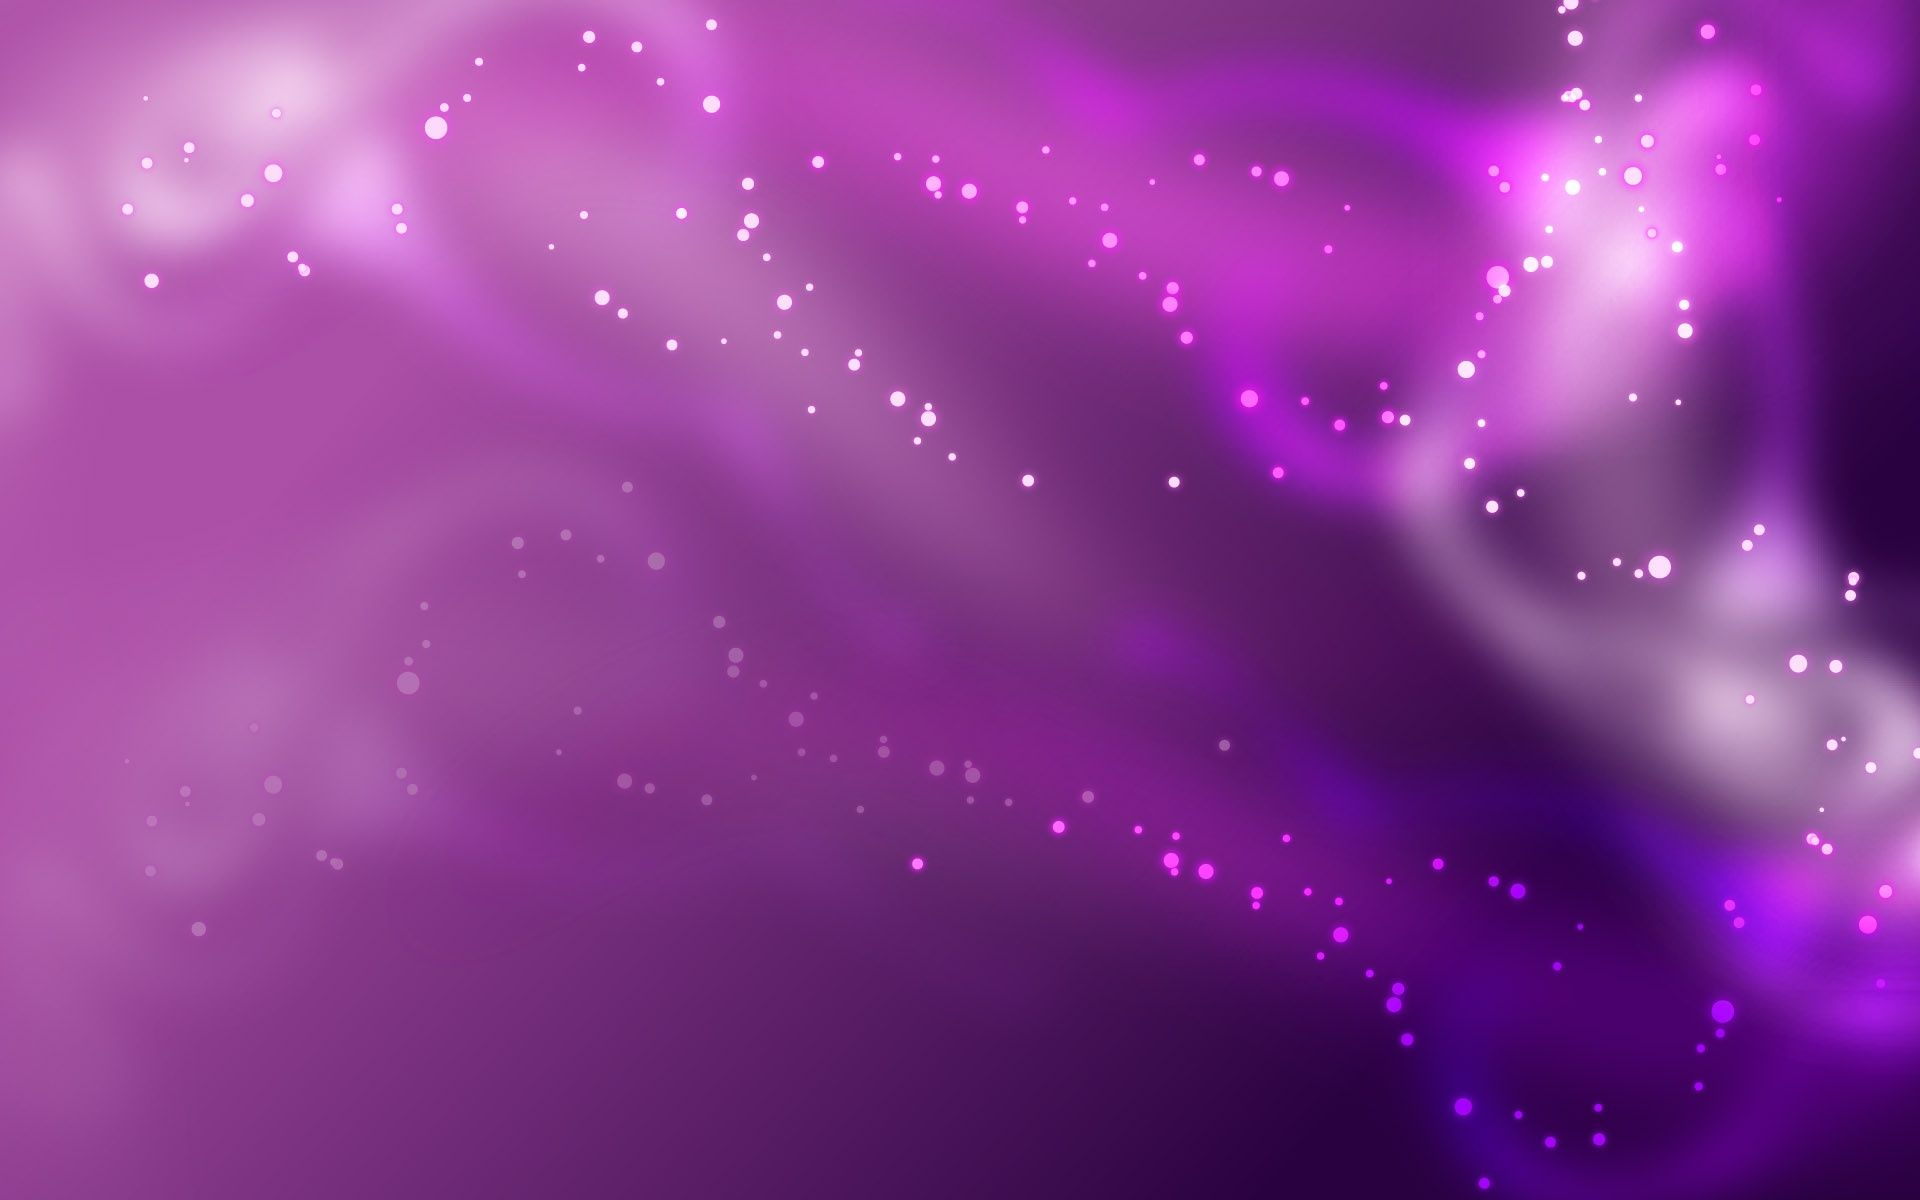 purple colorful wallpaper - http://www.hdofwallpapers.com/purple ...